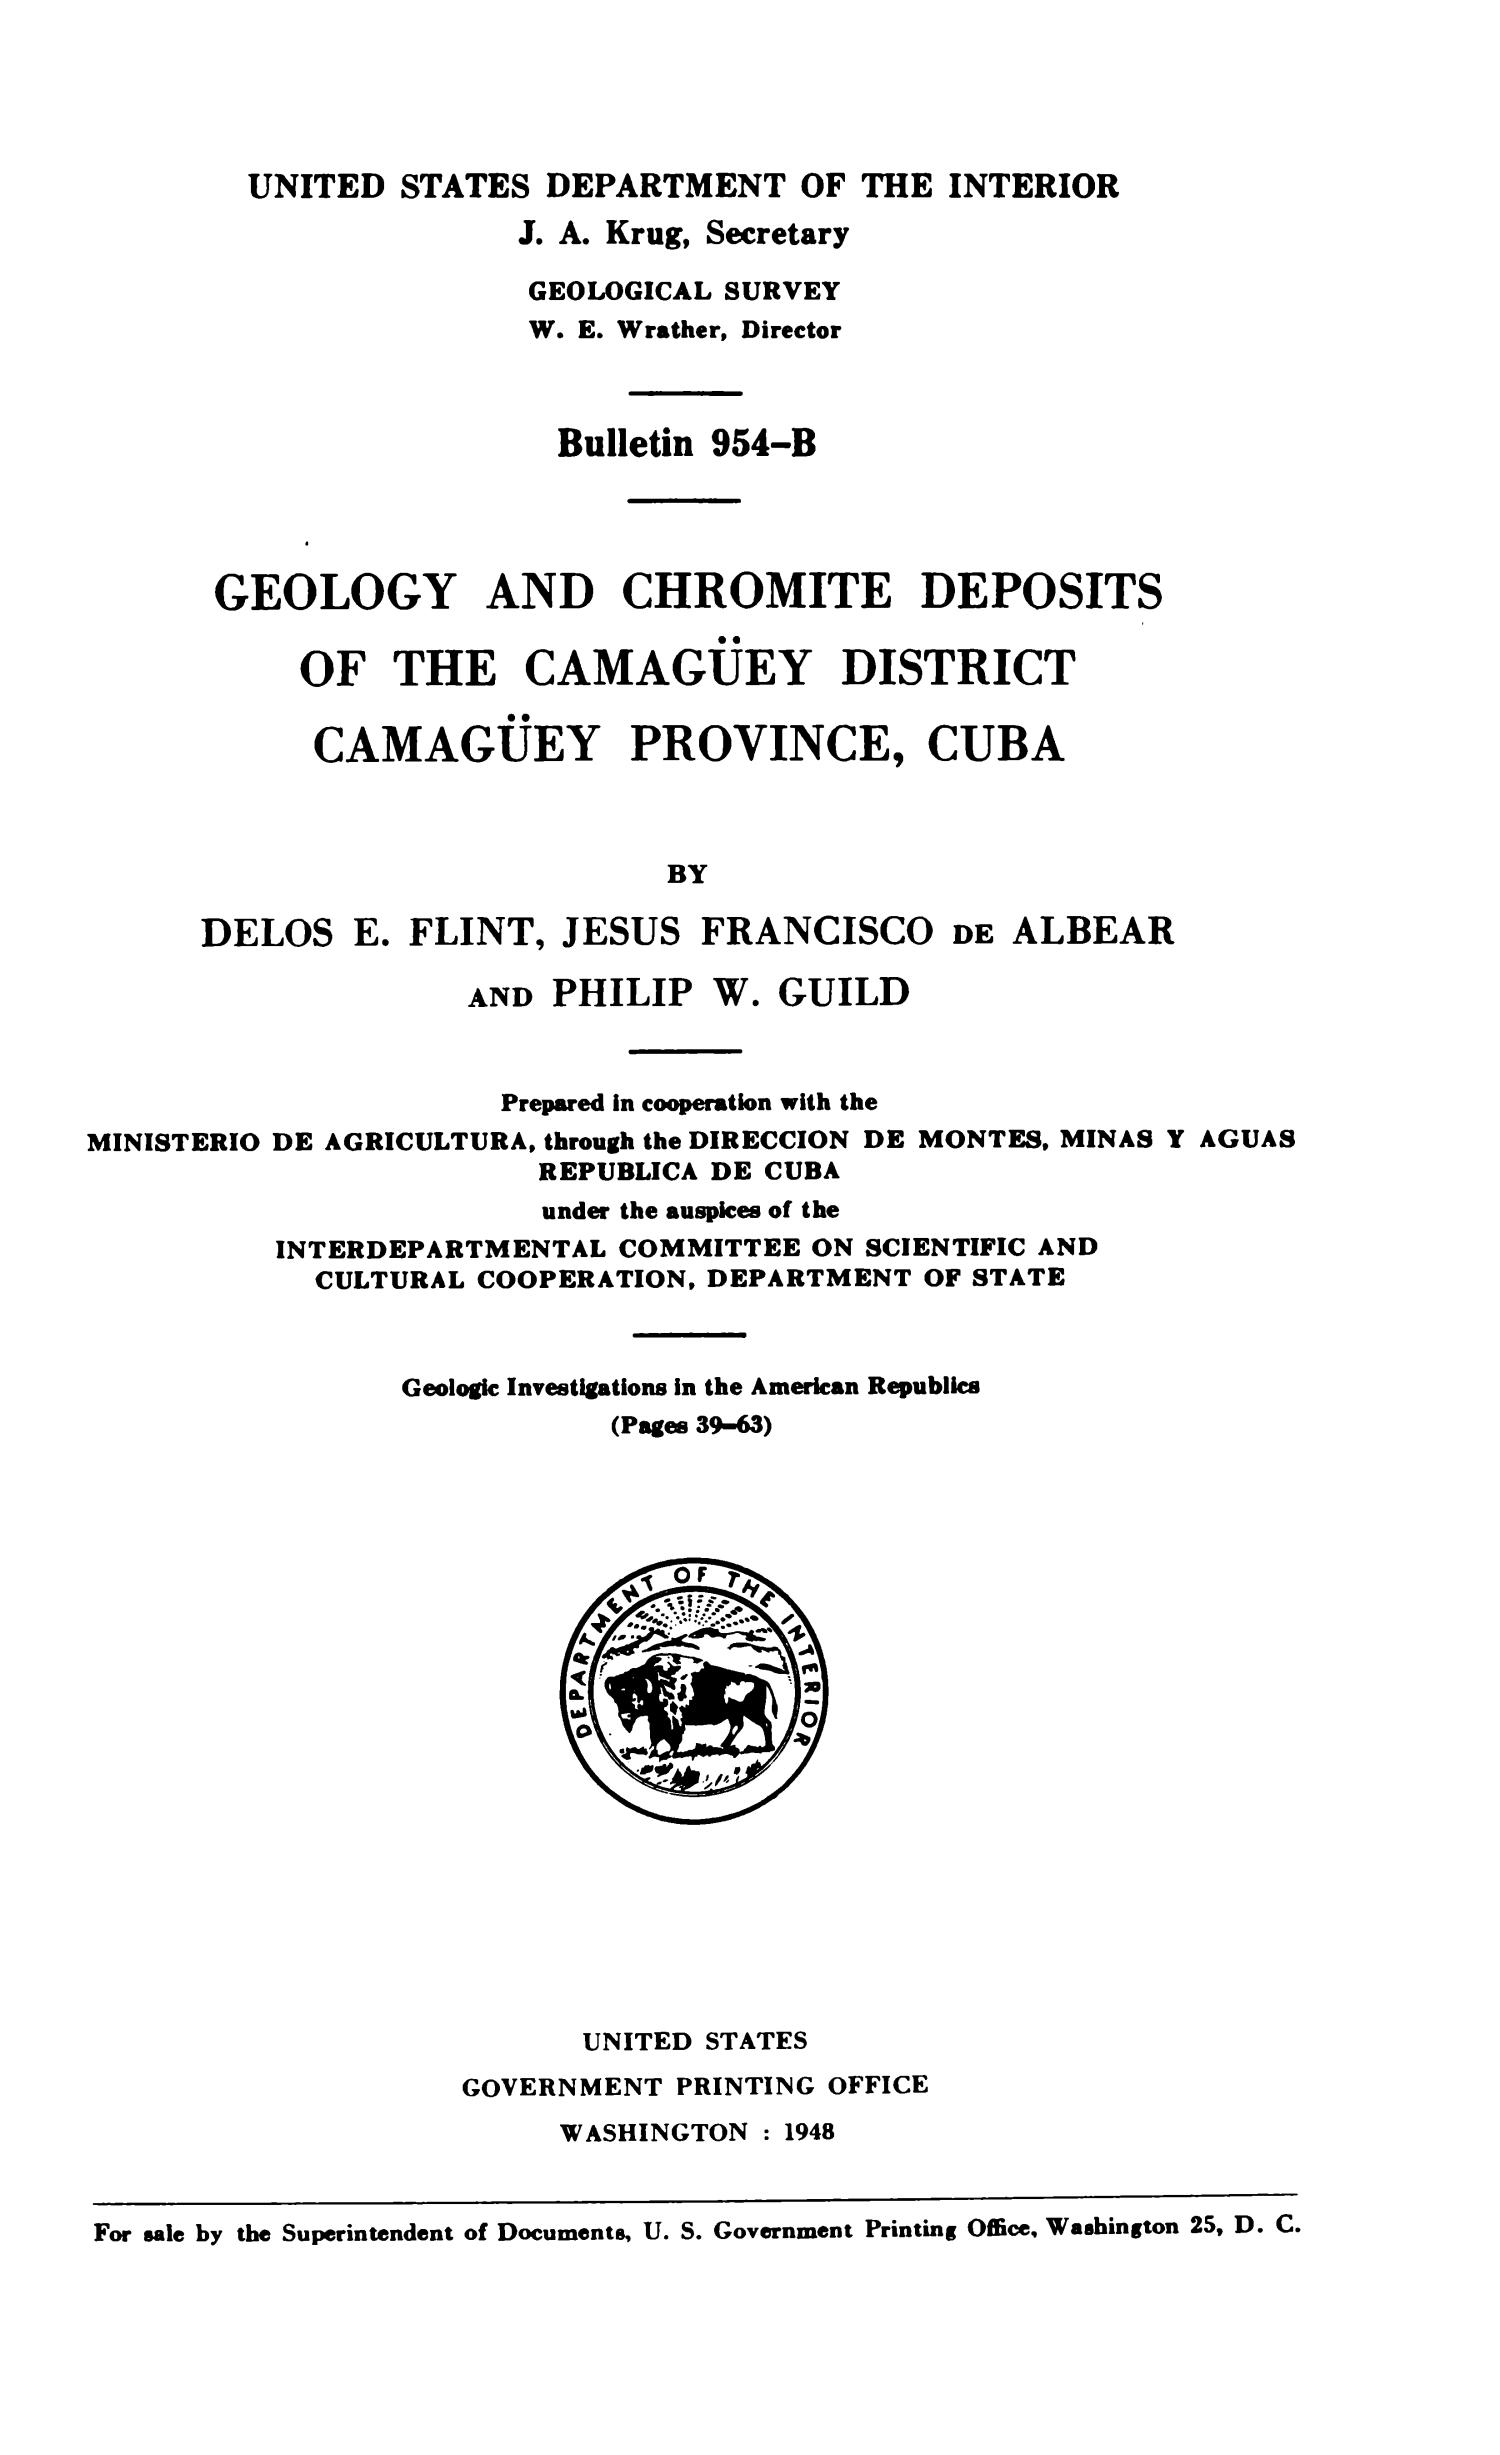 Geology and Chromite Deposits of the Camagüey District, Camagüey Province, Cuba                                                                                                      Title Page